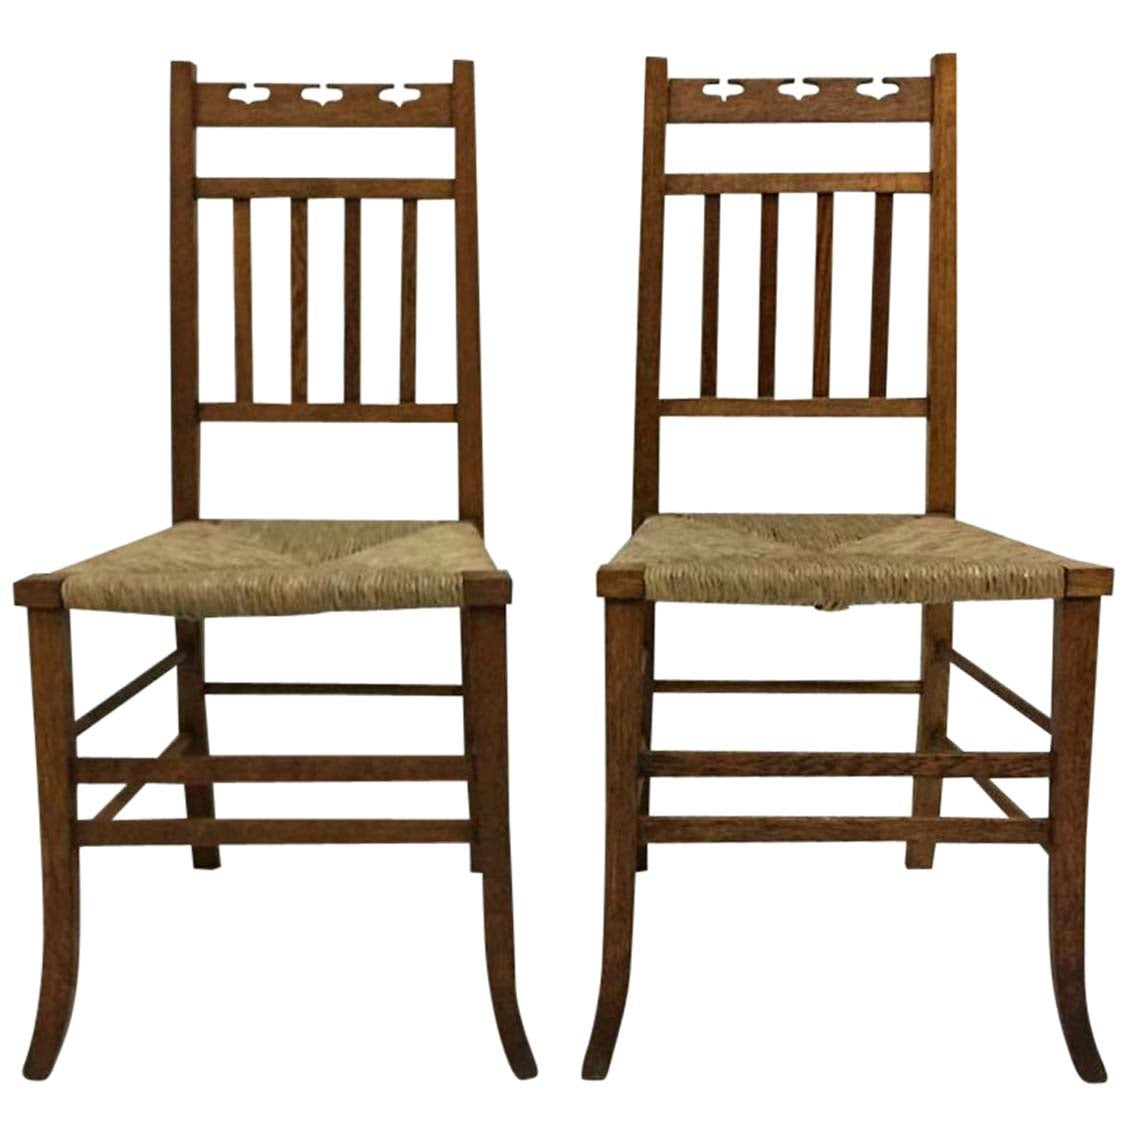 E A Taylor Attri, 7 Arts & Crafts Side or Bedroom Chairs by Wylie & Lochhead